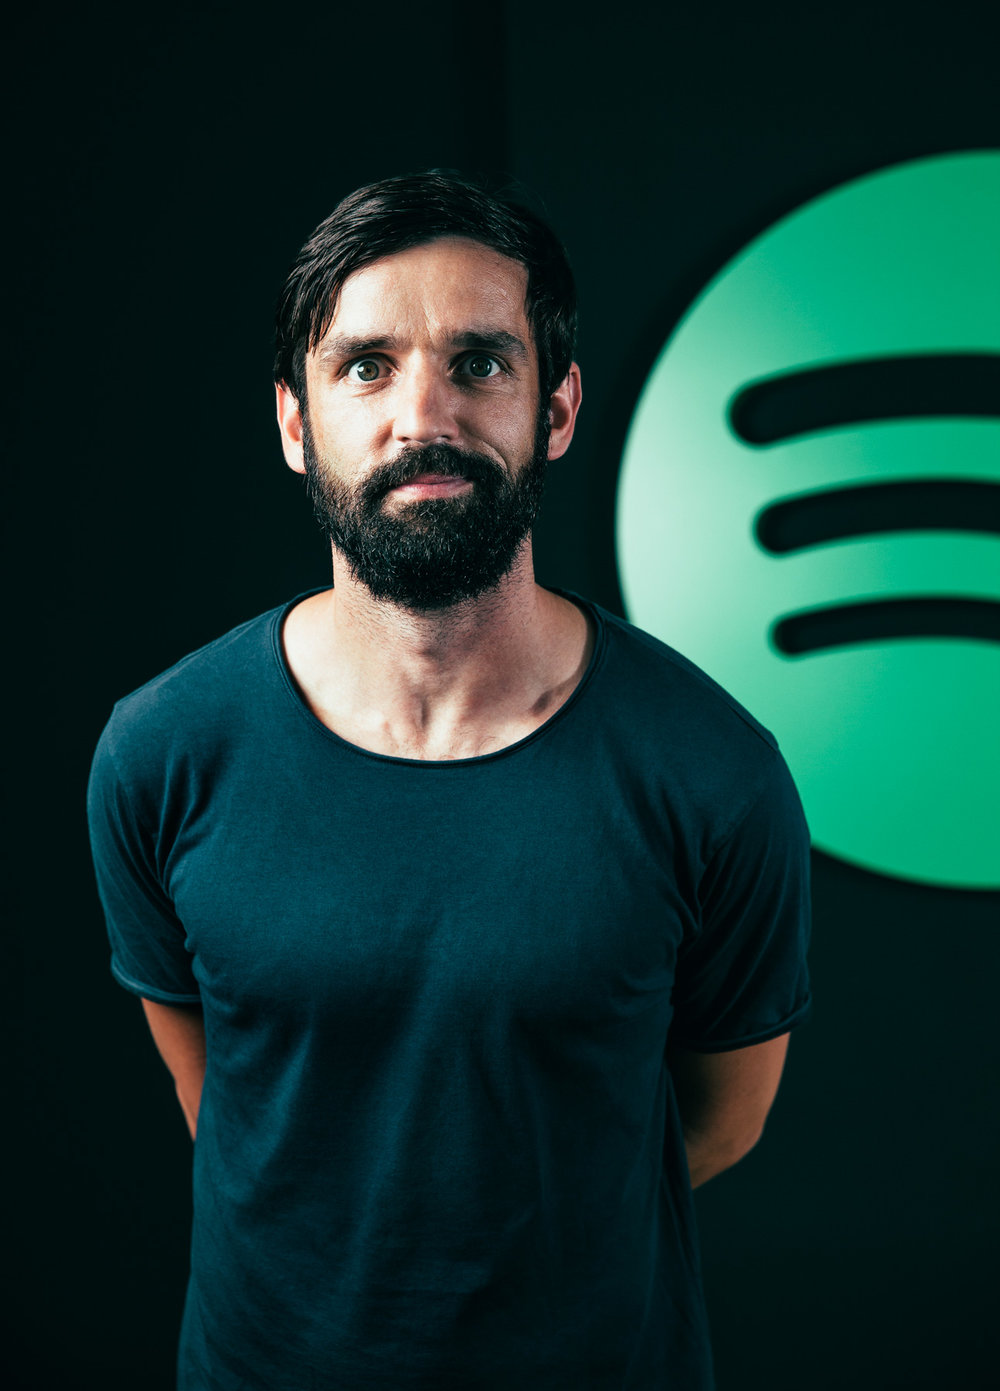 ©TomWoollard_Spotify_Berlin-Marcel-Grobe-editorial-music-portrait-with-Spotify-logo-in-background.jpg